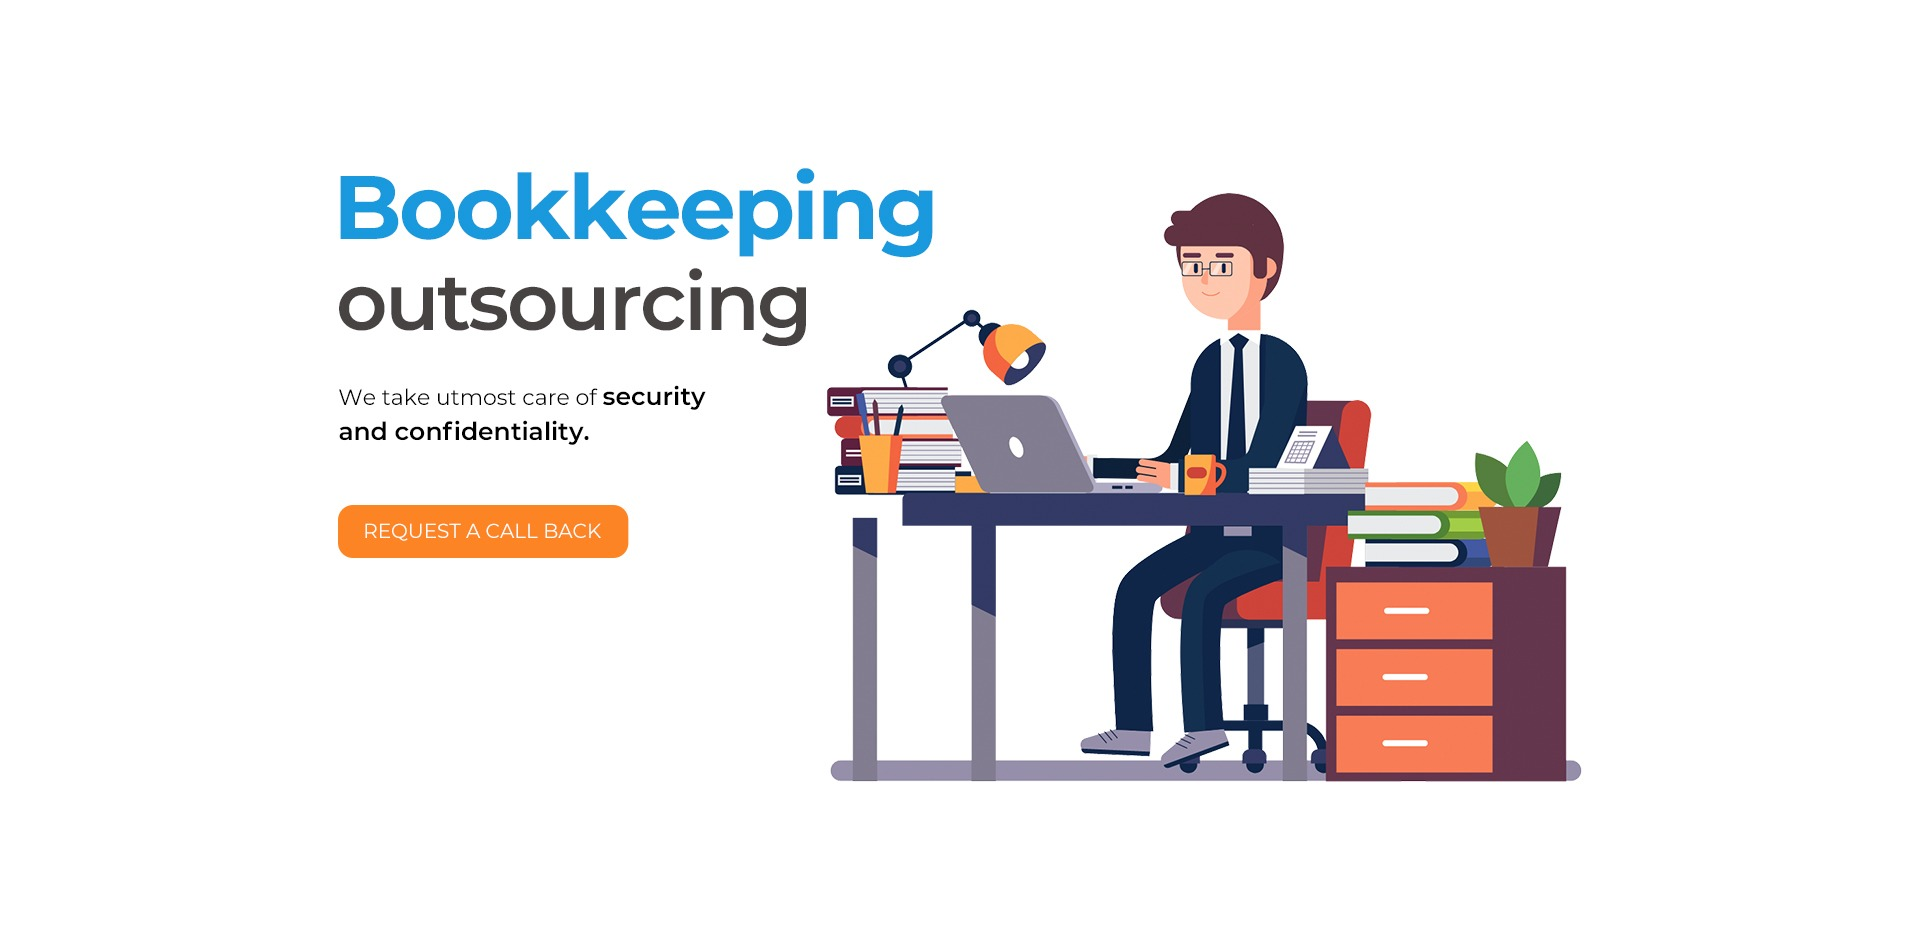 1. Book-keeping-outsourcing